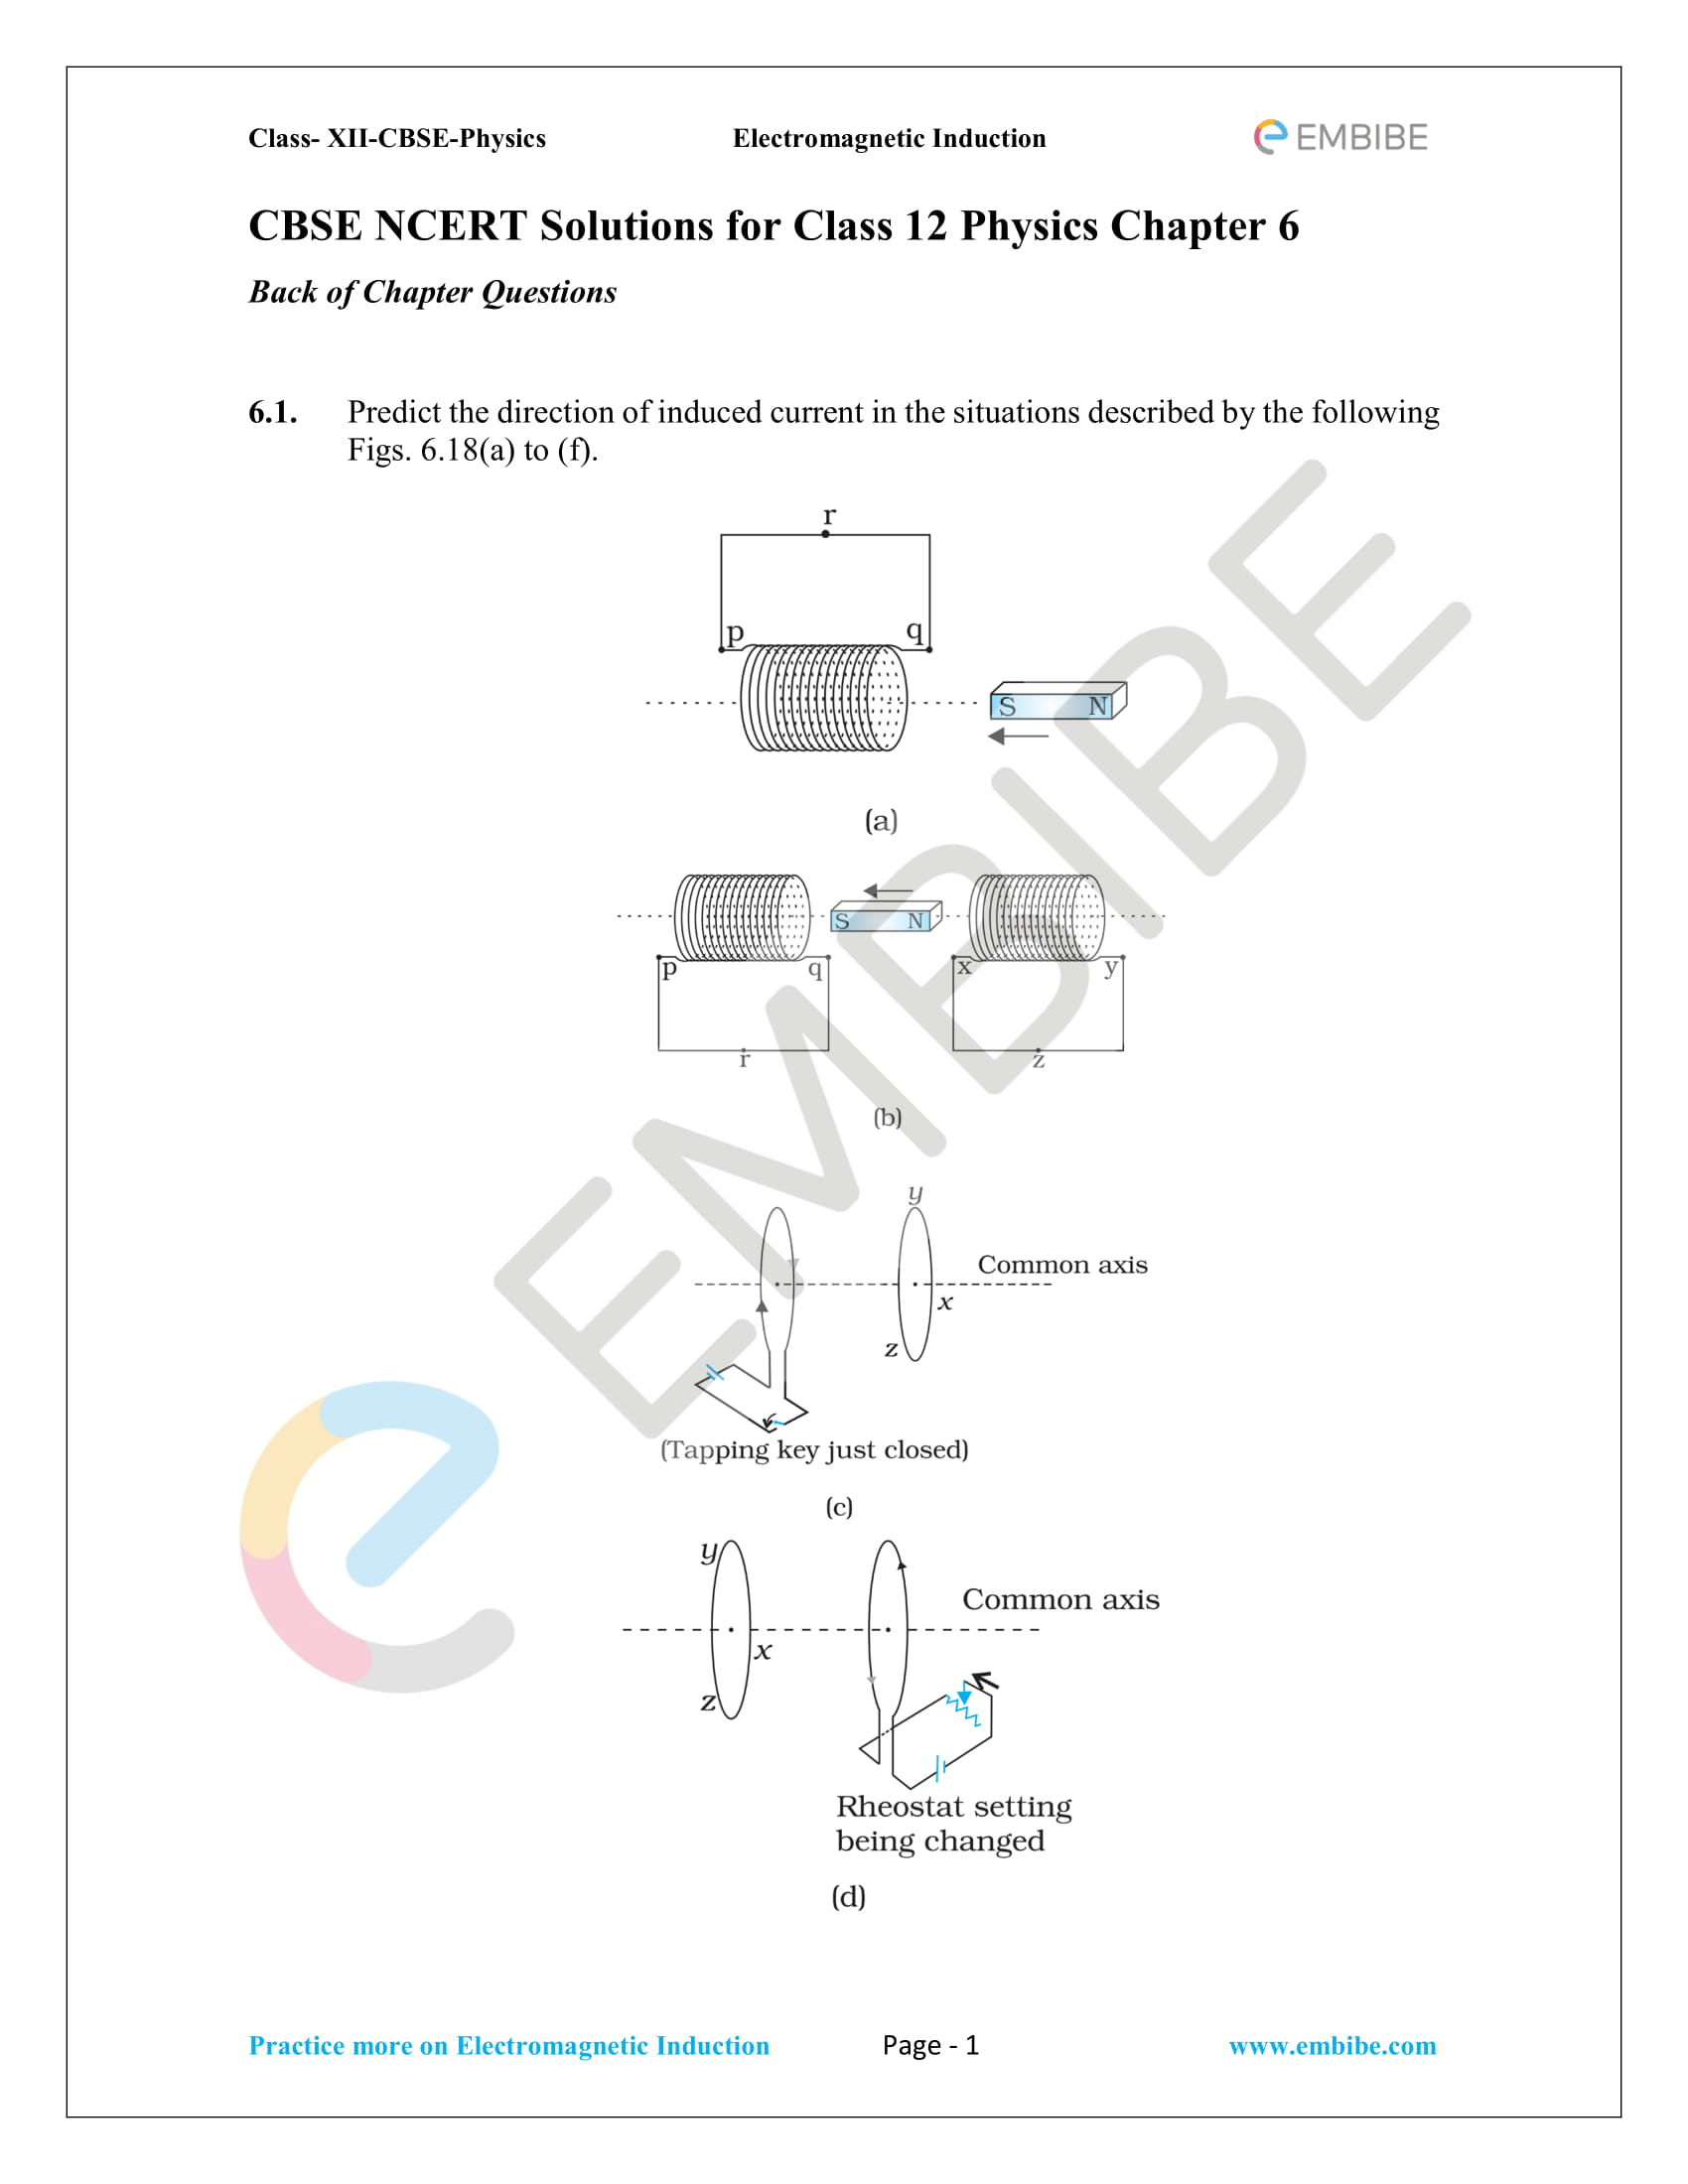 CBSE NCERT Solutions Class 12 Physics Chapter 6 PDF - Electromagnetic Induction -1